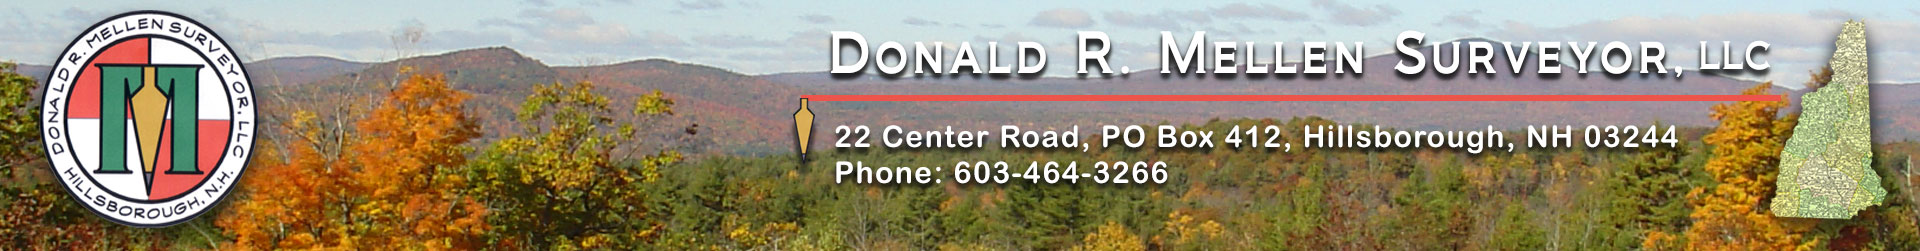 Donald R. Mellen Surveyor, LLC. 22 Center Road, PO Box 412, Hillsborough, New Hampshire, 03244